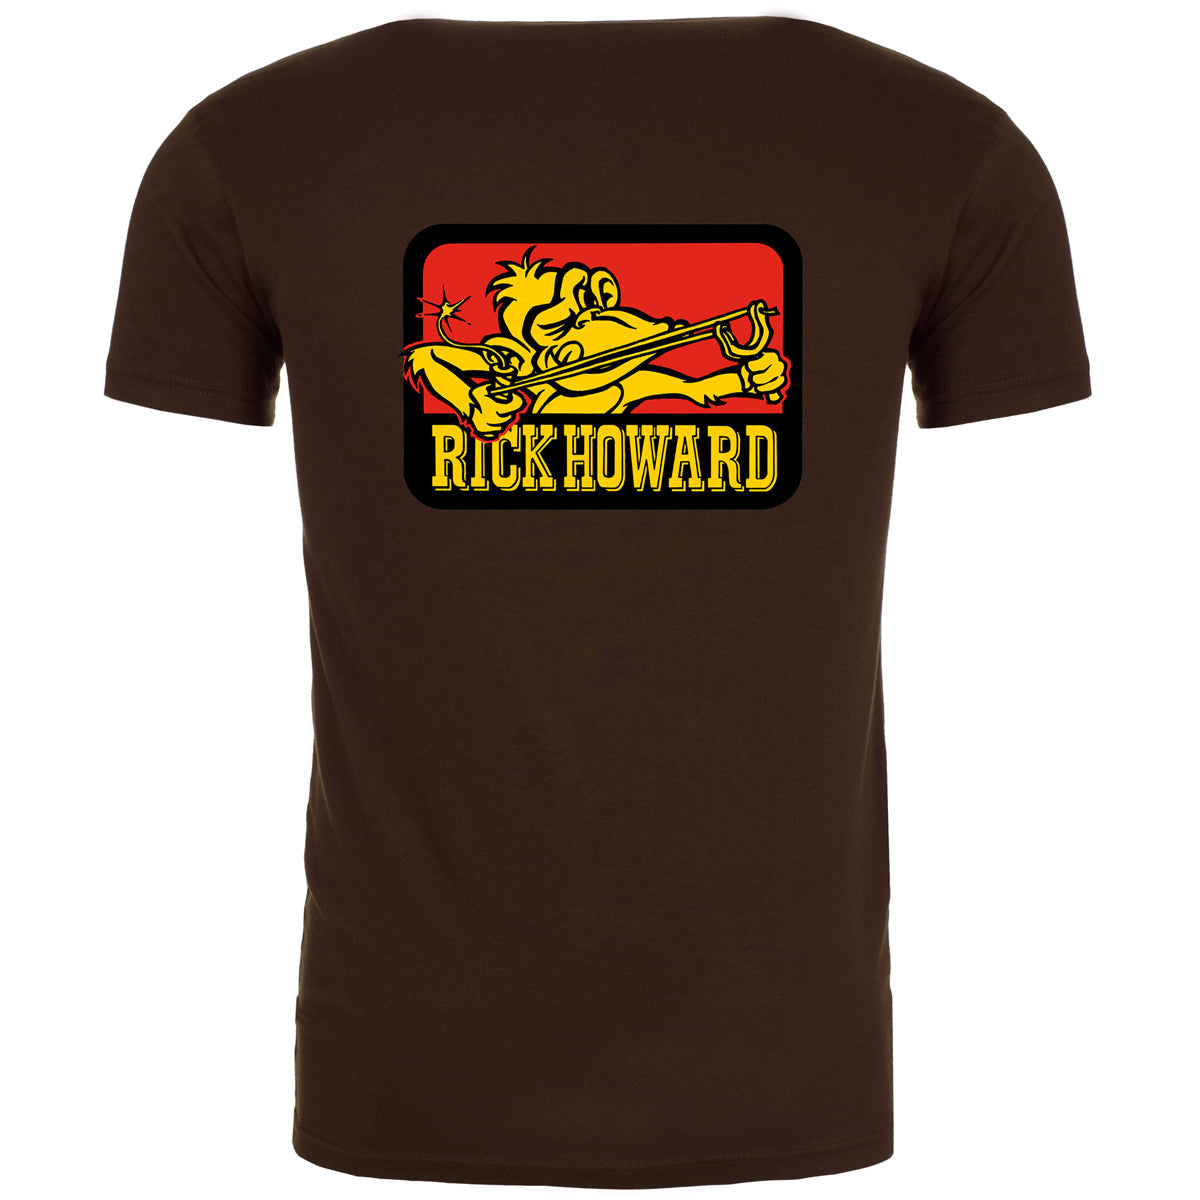 Rick Howard monkey t-shirts - only a couple left!